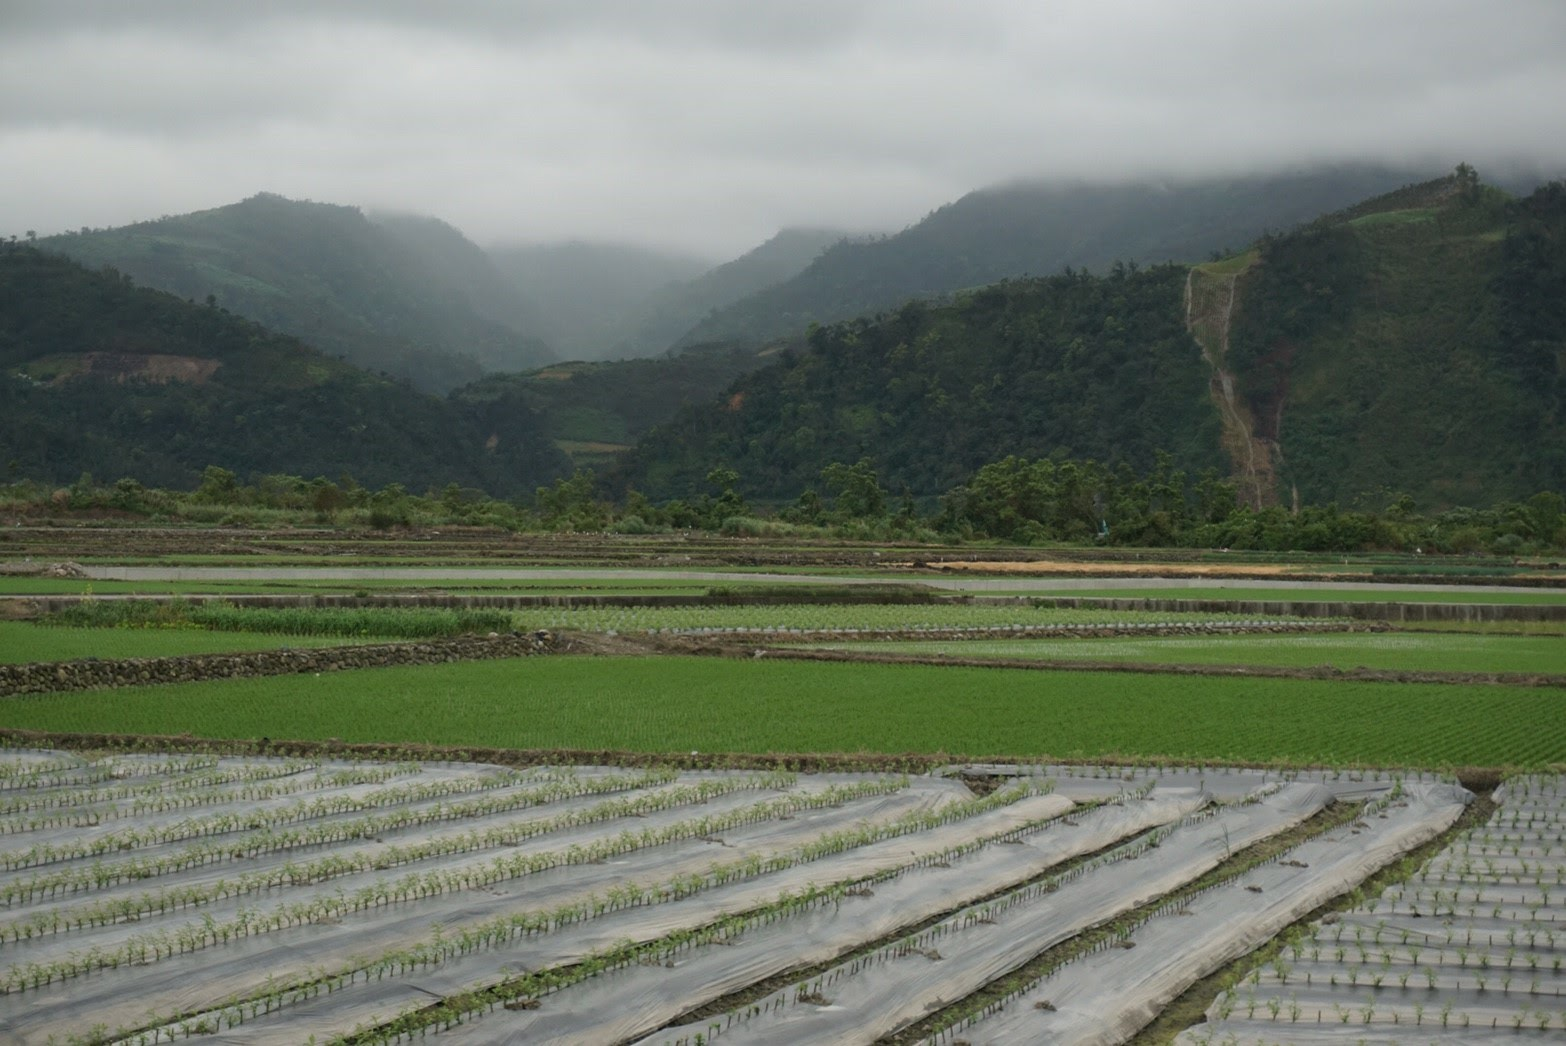 Rice plots in rural Taiwan. Photo by Yu Hsuan Amy Yang.